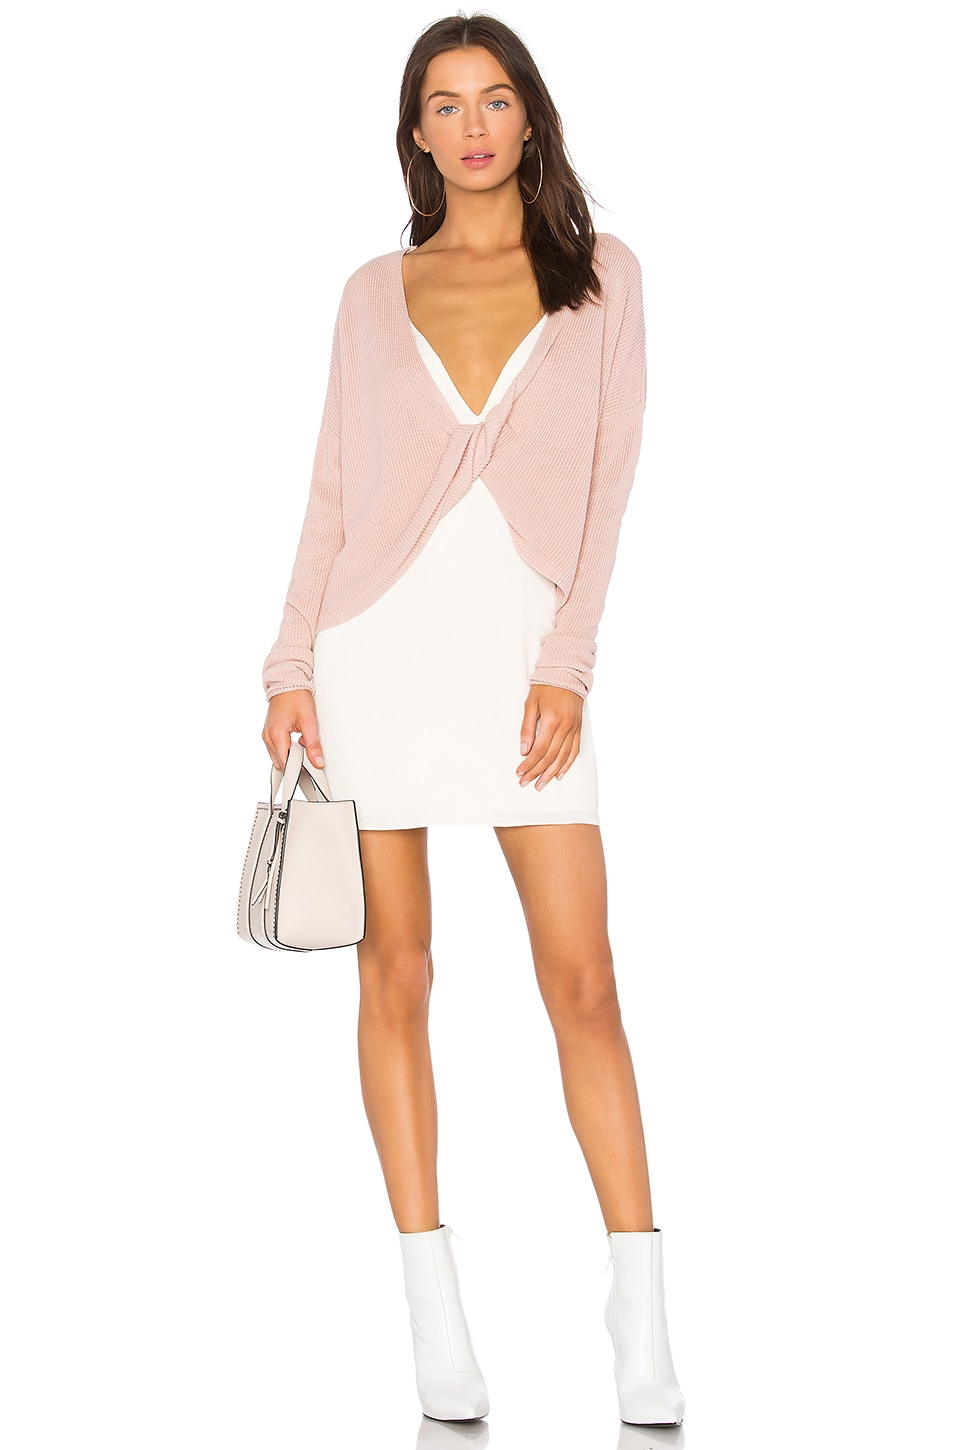 Lovers + Friends Spring Sweater in Dusty Rose